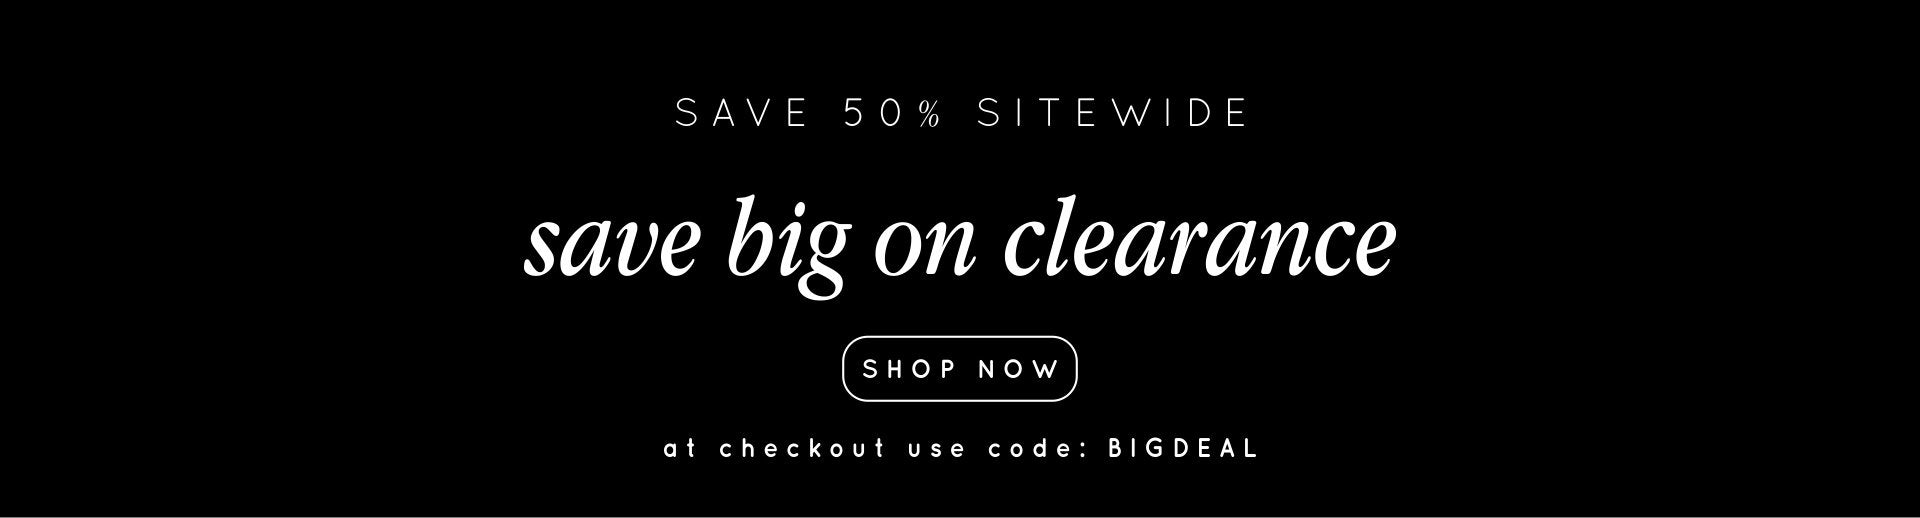 save 50% off even on clearance items using code BIGDEAL